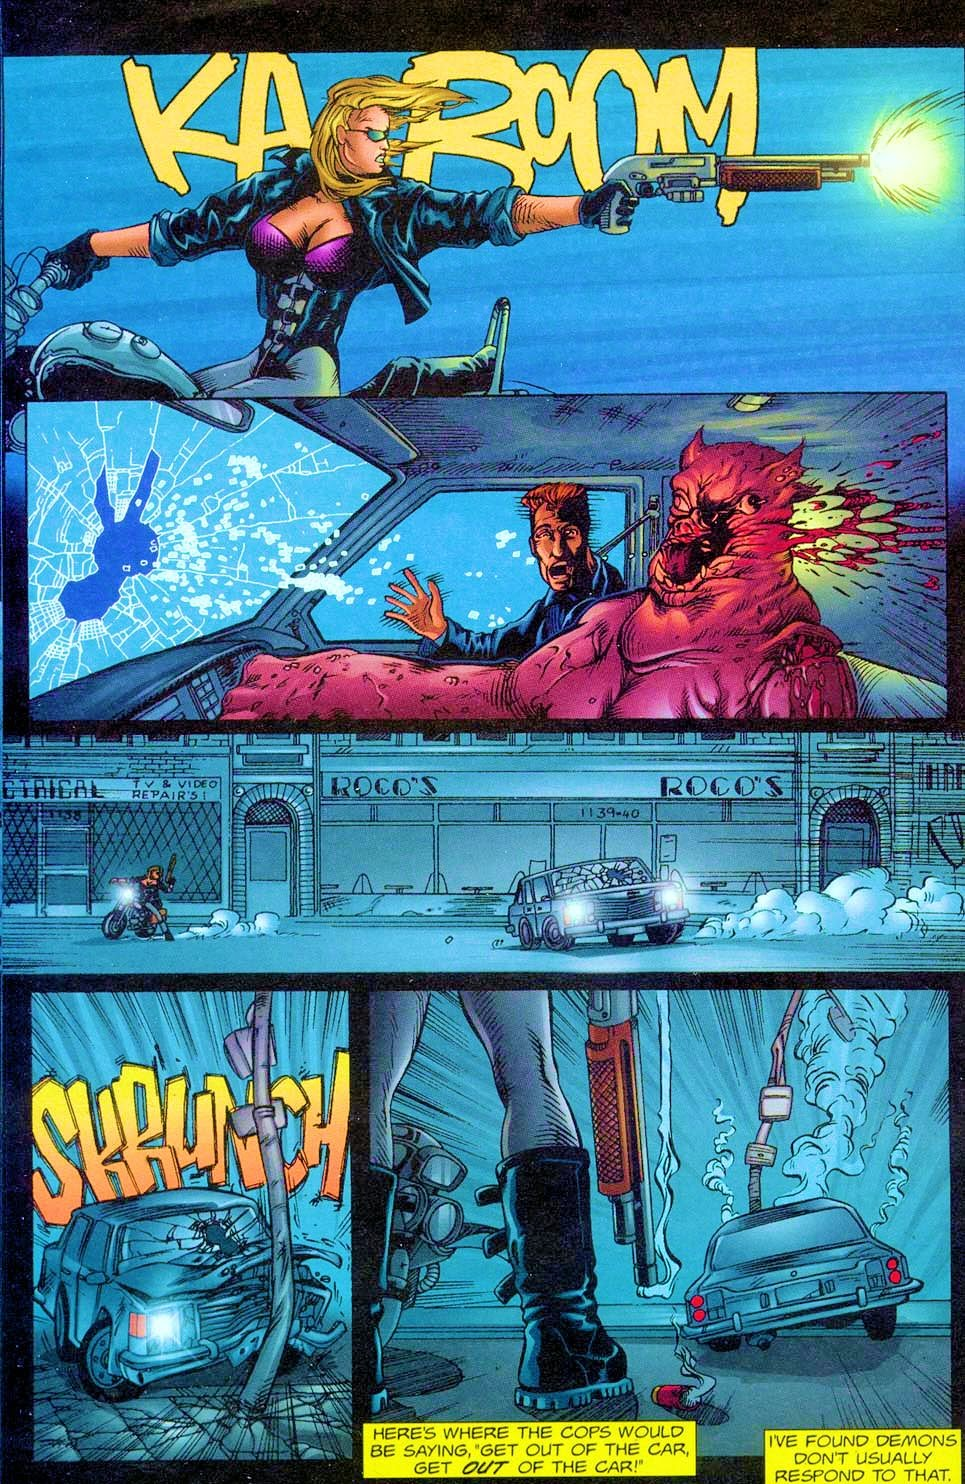 Shotgun Mary: Blood Lore issue 1 - Page 14